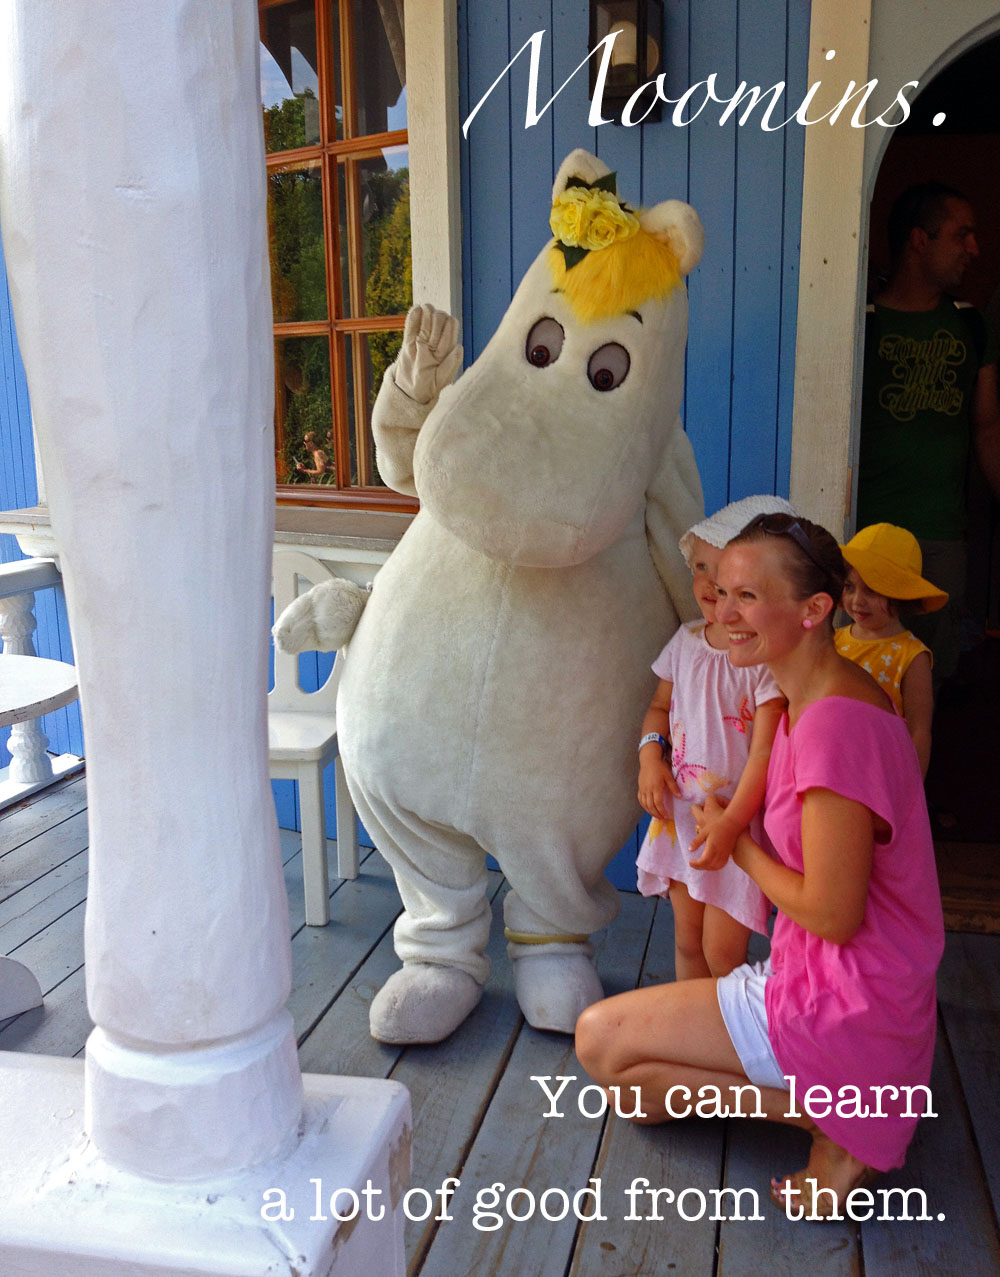 moomin-world-learn-a-lot-from-them